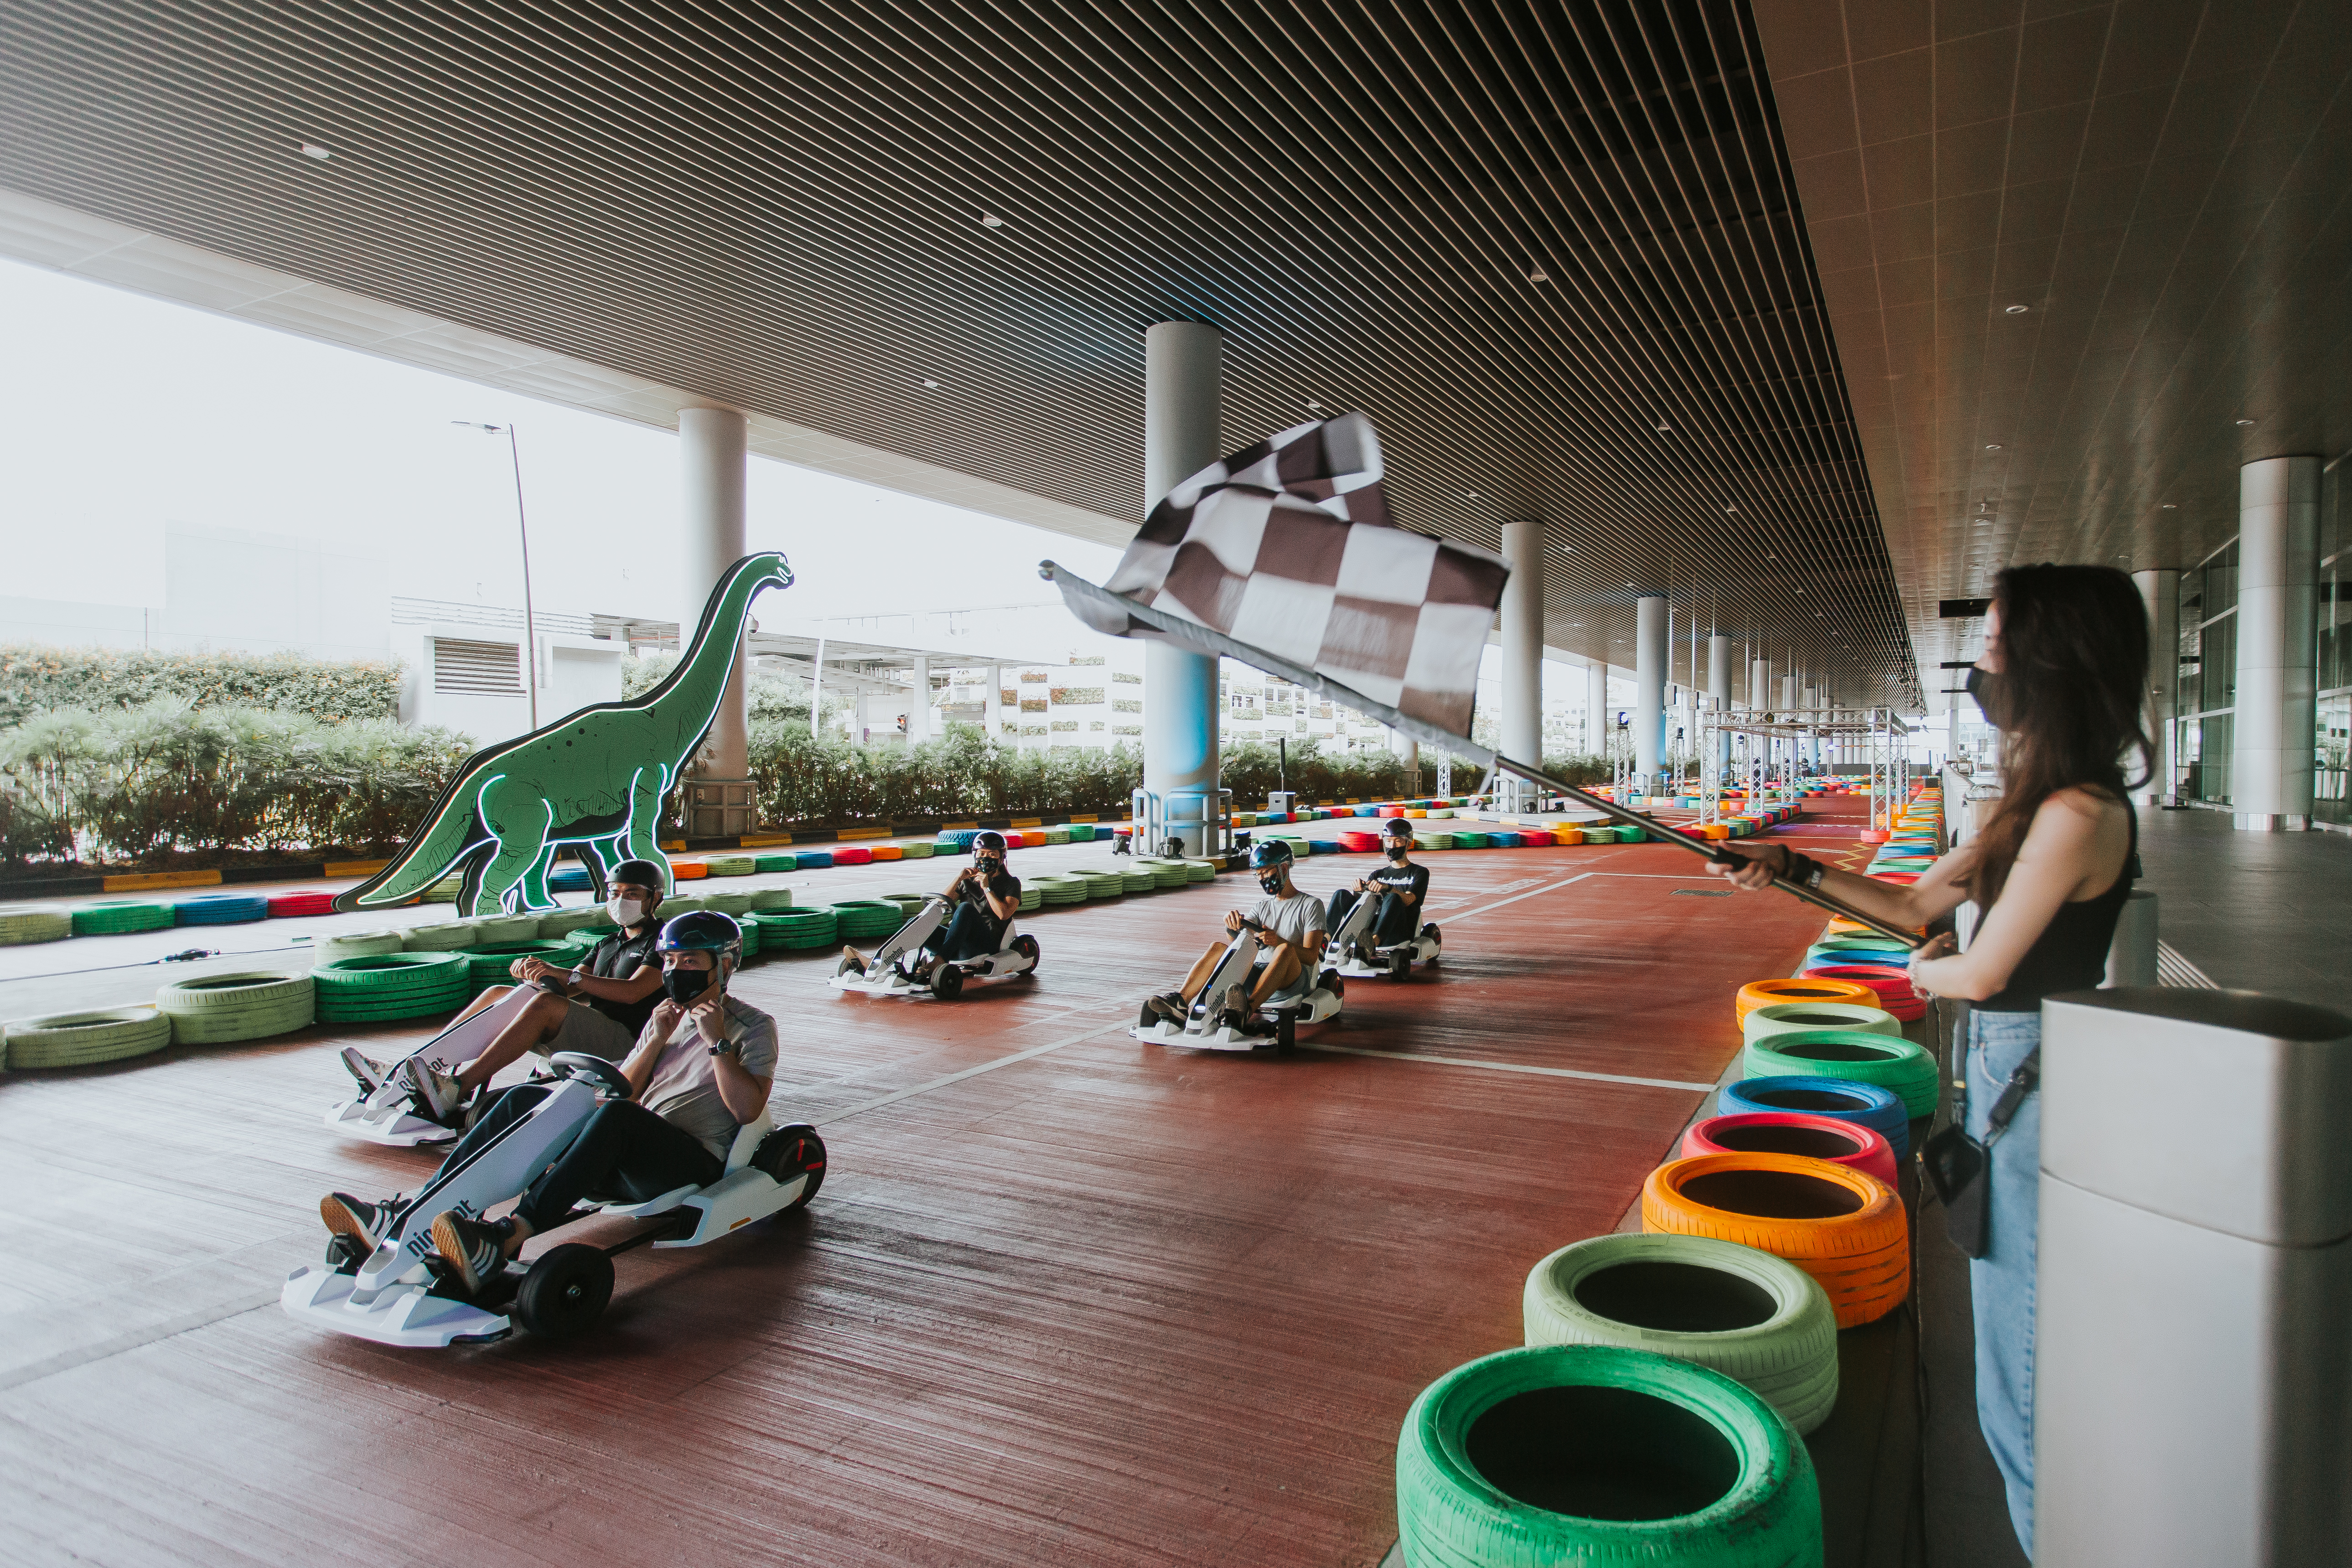 Prepare for some fast and furious action at the Dino Kart race track at T4. Photo courtesy: Changi Airport